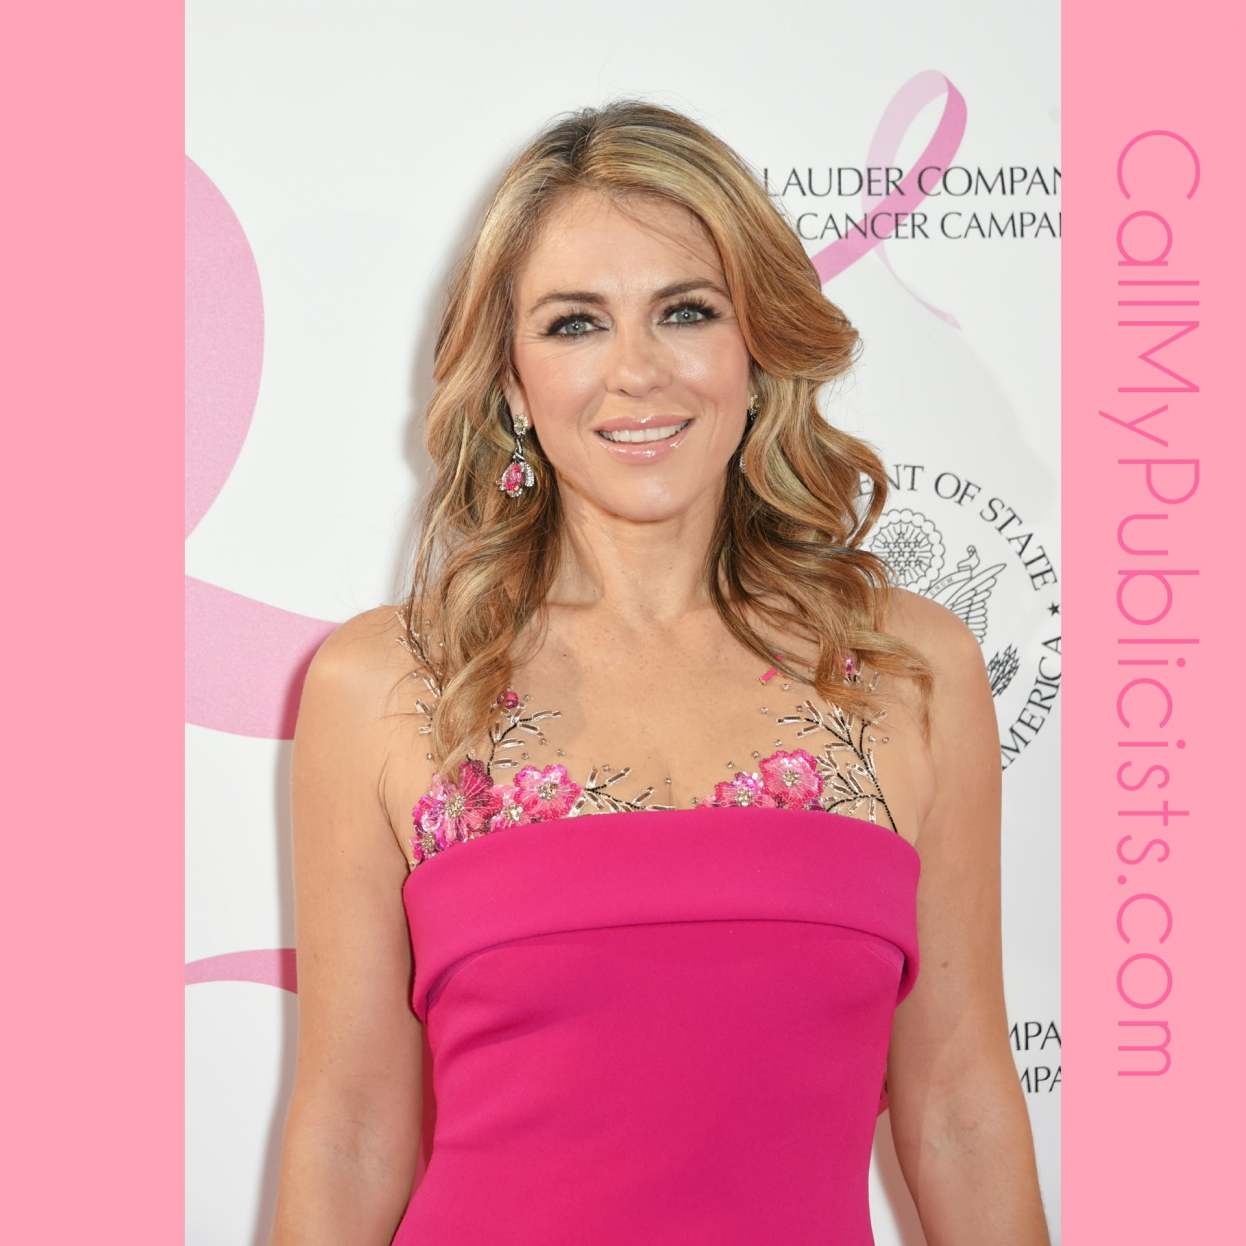 Elizabeth Hurley Celebrating 25 Years Of The Pink Ribbon - CallMyPublicists.com